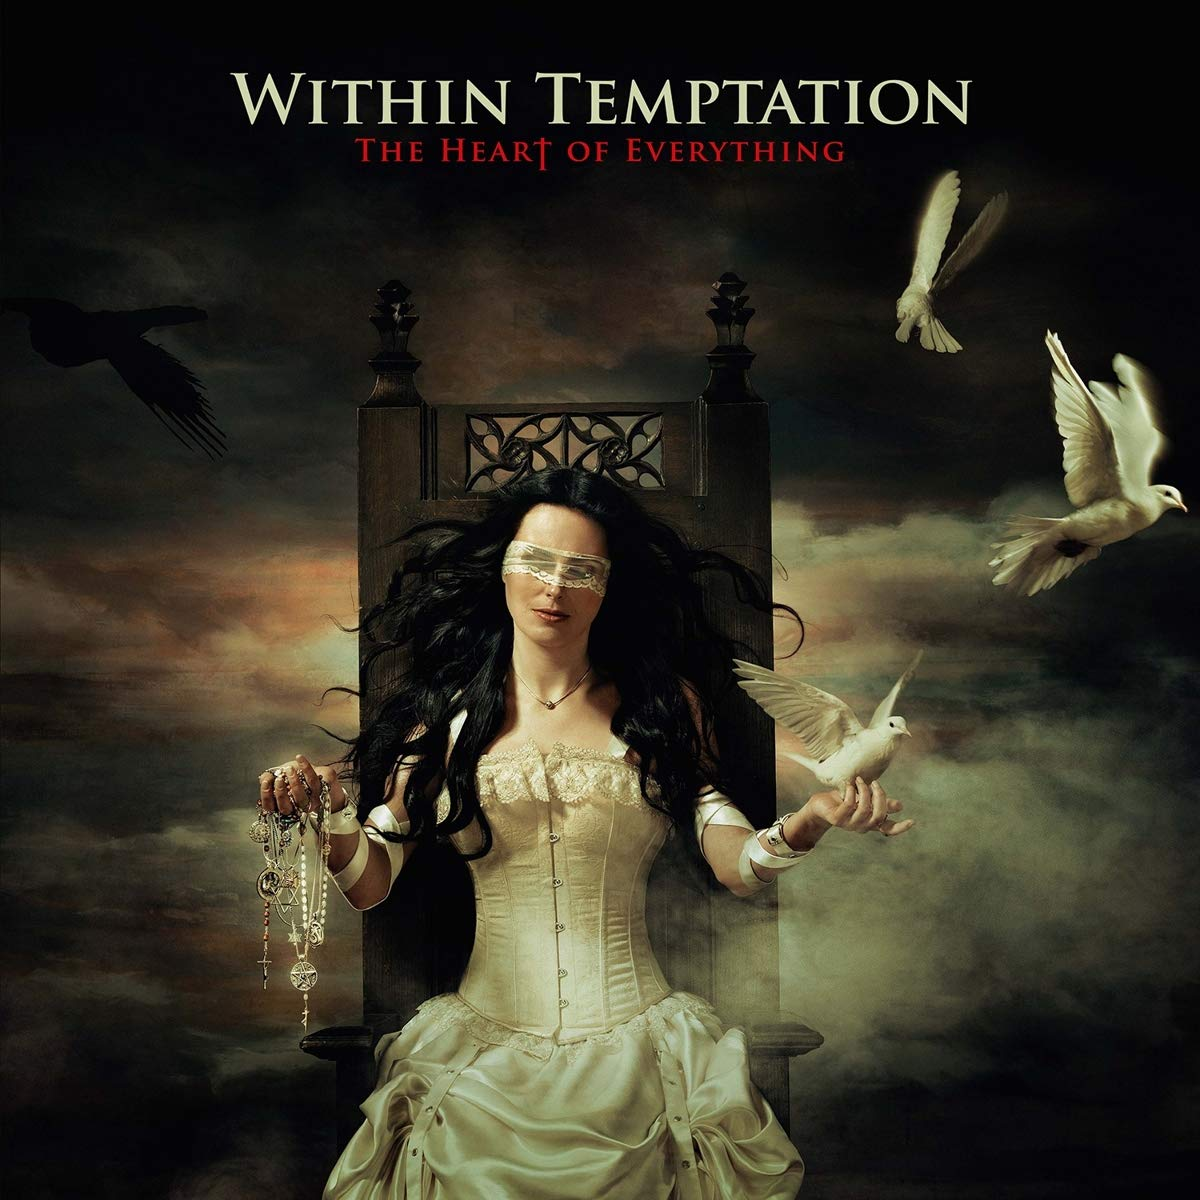 Within Temptation - The Heart of Everything (2007) [FLAC] Download